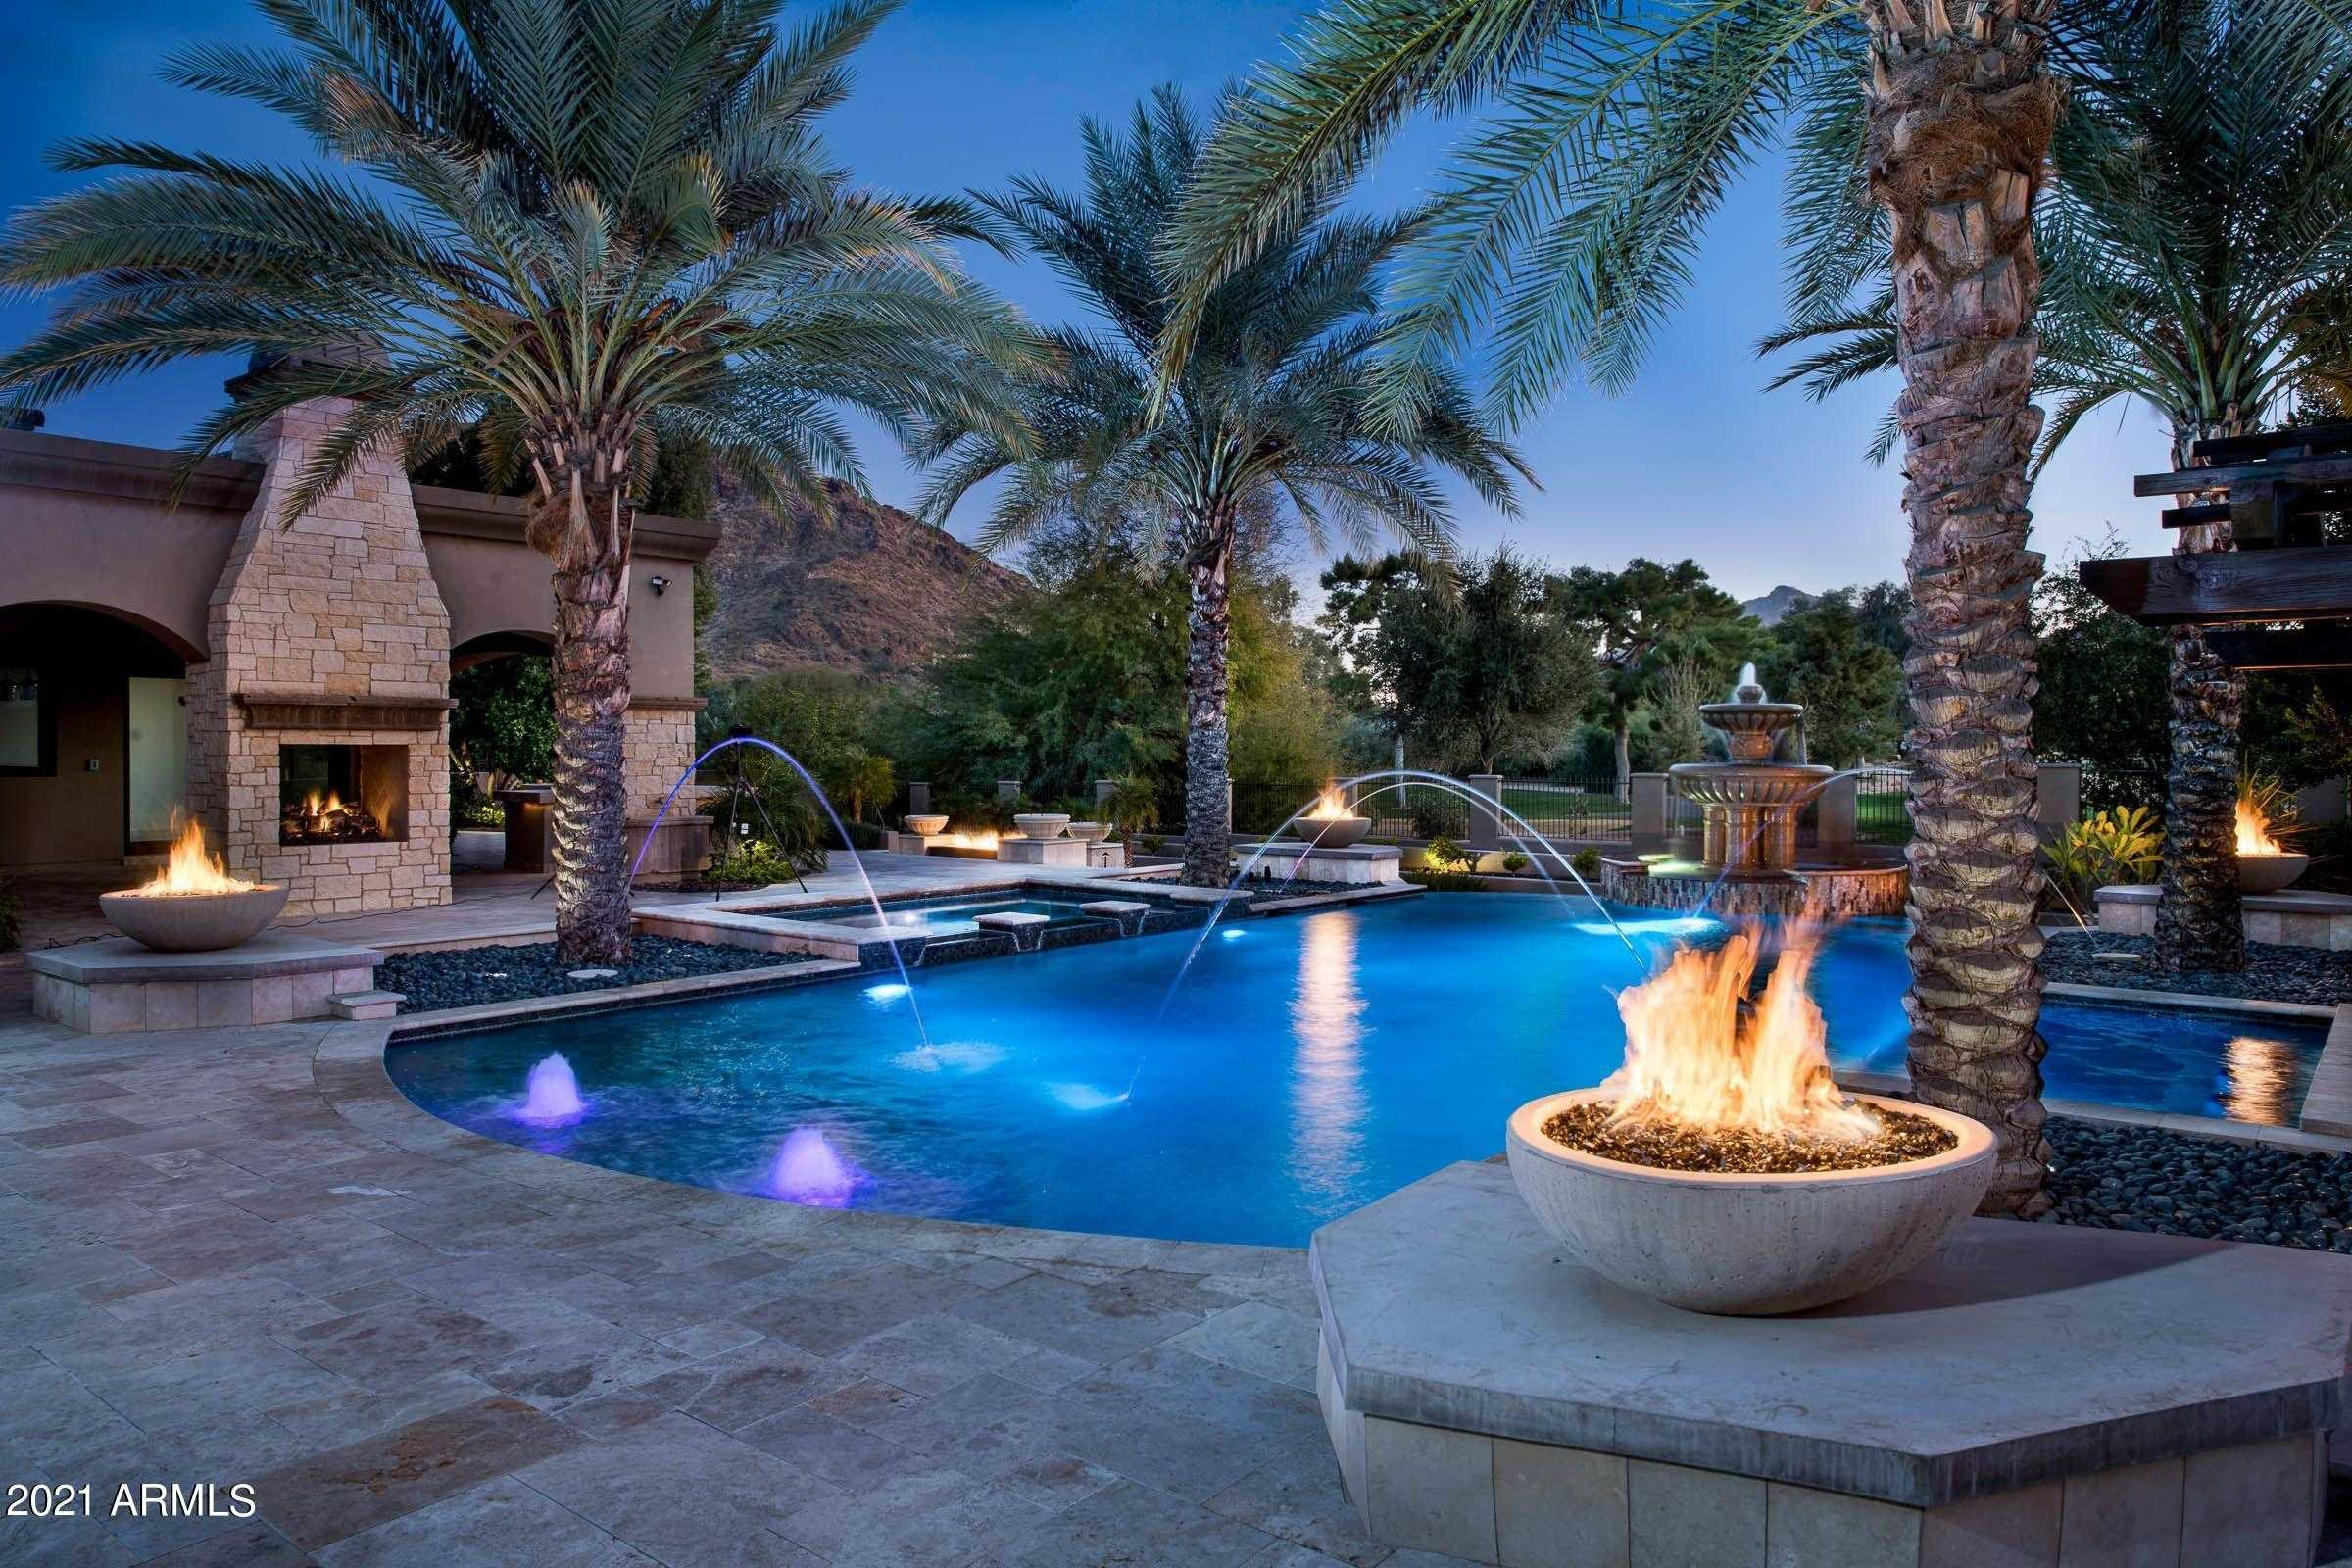 $7,890,000 - 6Br/8Ba - Home for Sale in Paradise Hills, Paradise Valley